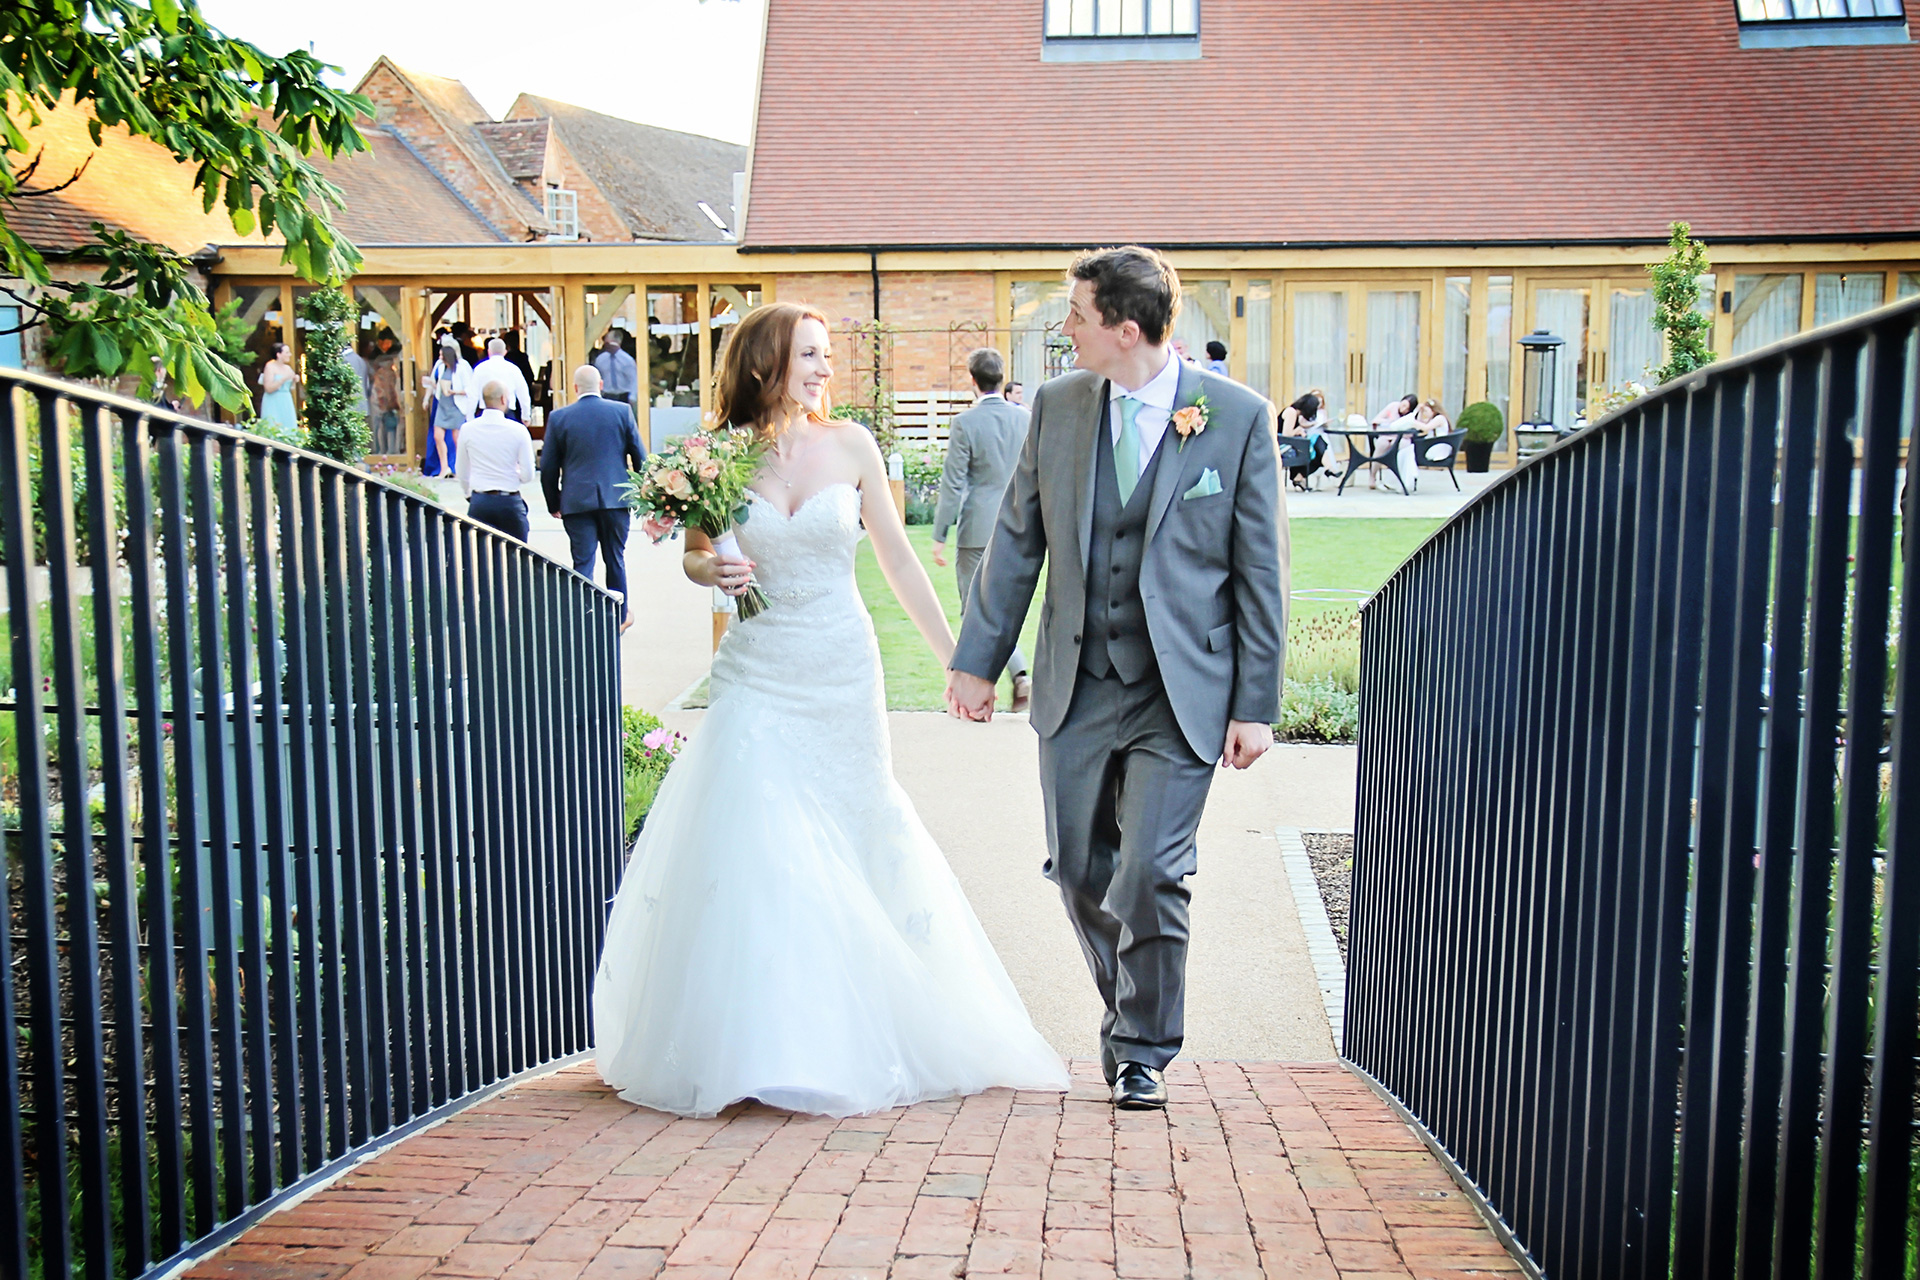 The bride and groom explore the gardens at Bassmead Manor Barns wedding venue in Cambridgeshire